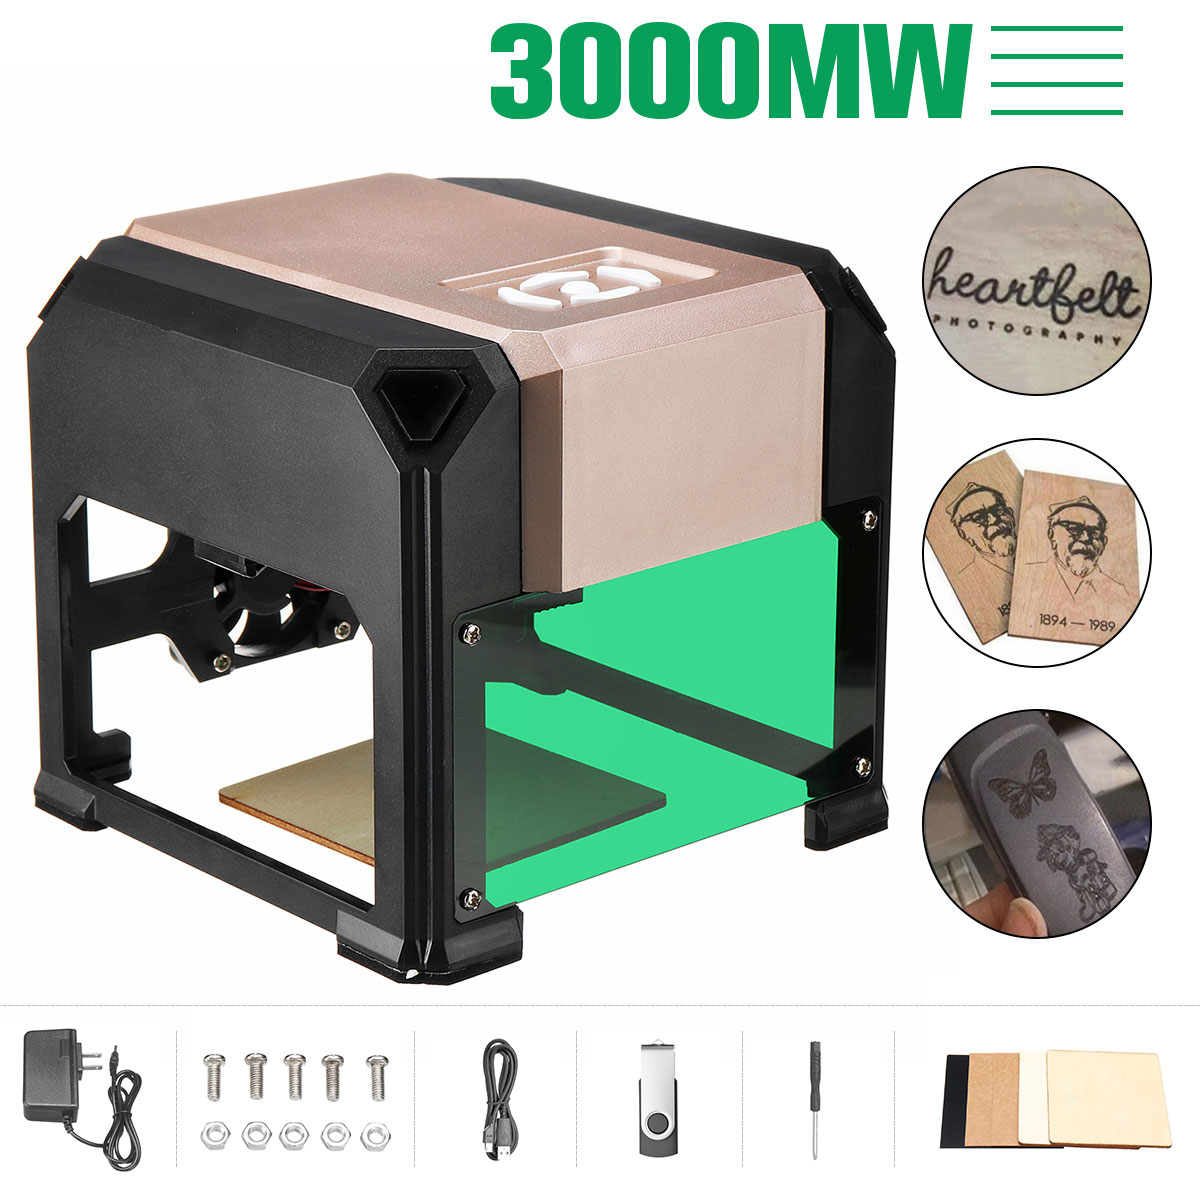 2000/3000mW USB Desktop Laser Engraver Machine DIY Logo Mark Printer Cutter CNC Laser Carving Machine 80x80mm Engraving Range